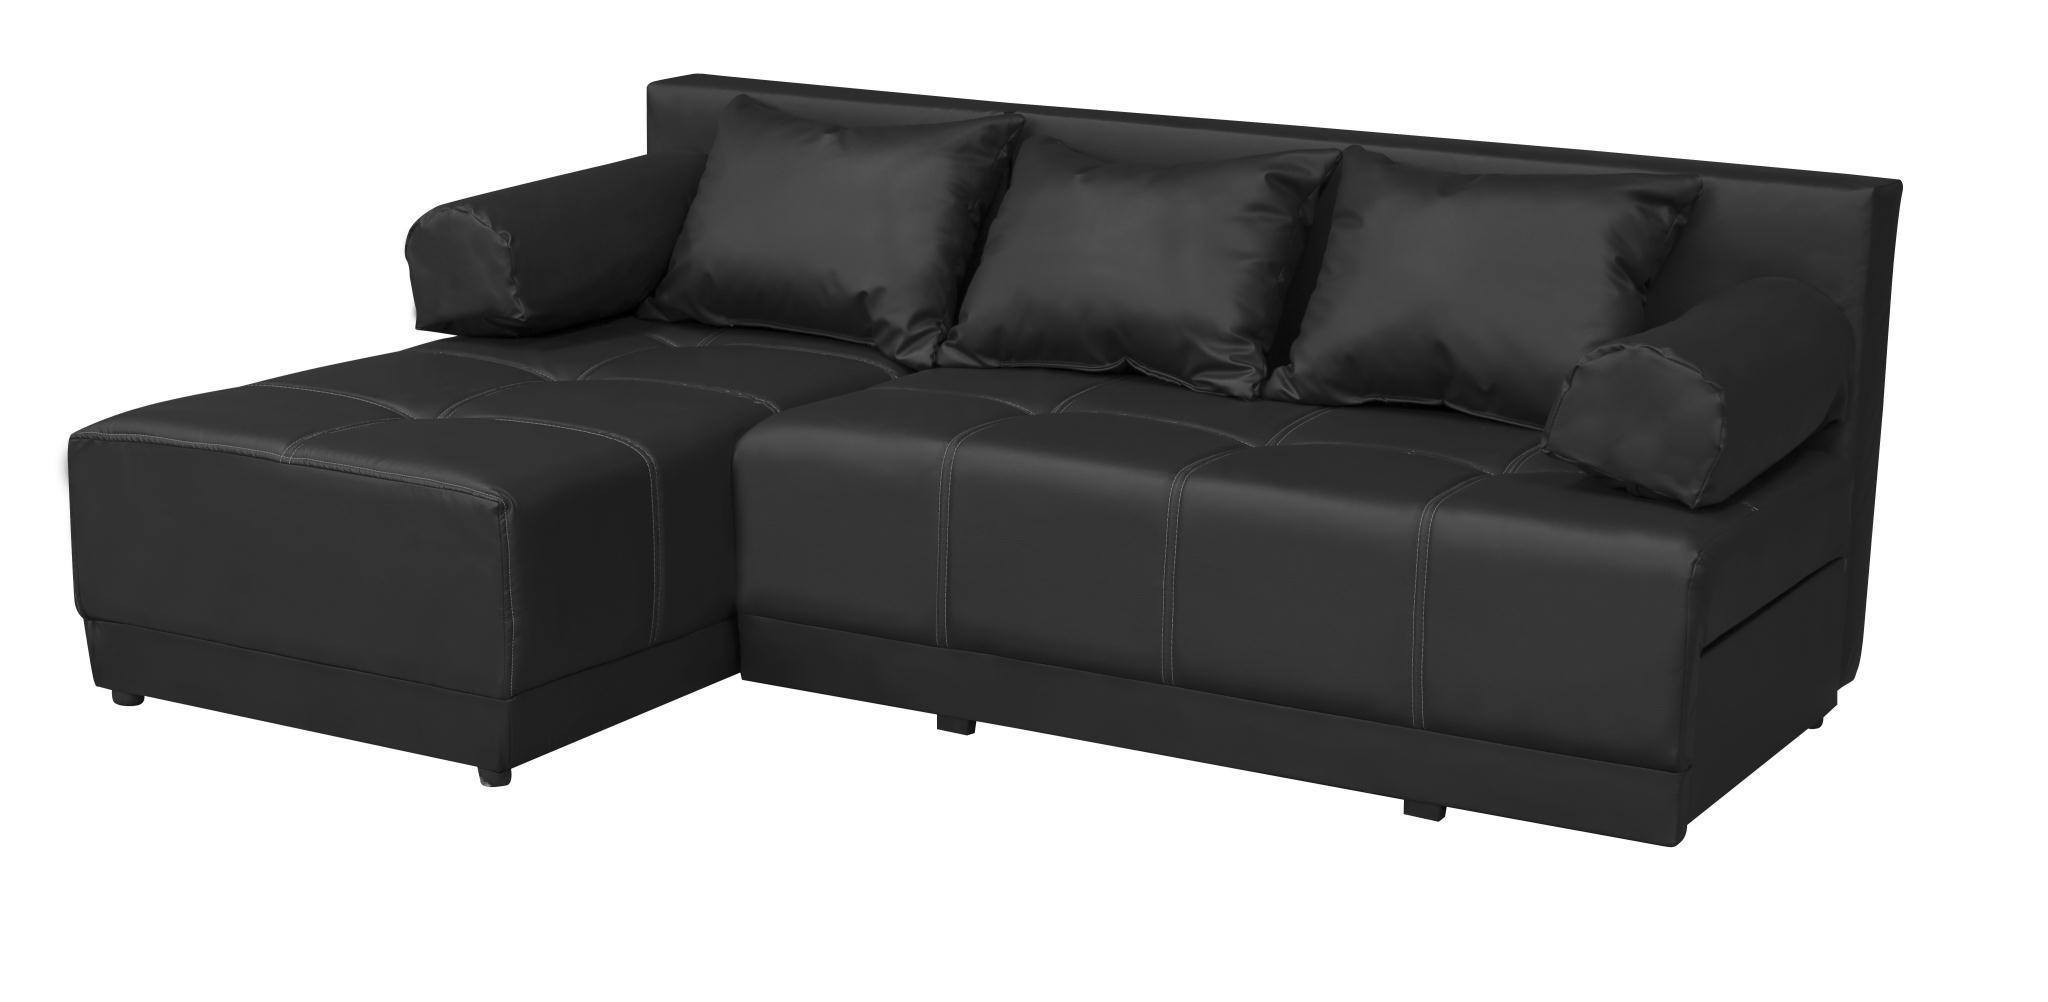 Scs Sofas Review Chloe Xl Rh Chaise Scatter Back Scs Sofas Living Room Scs Portland Sofa